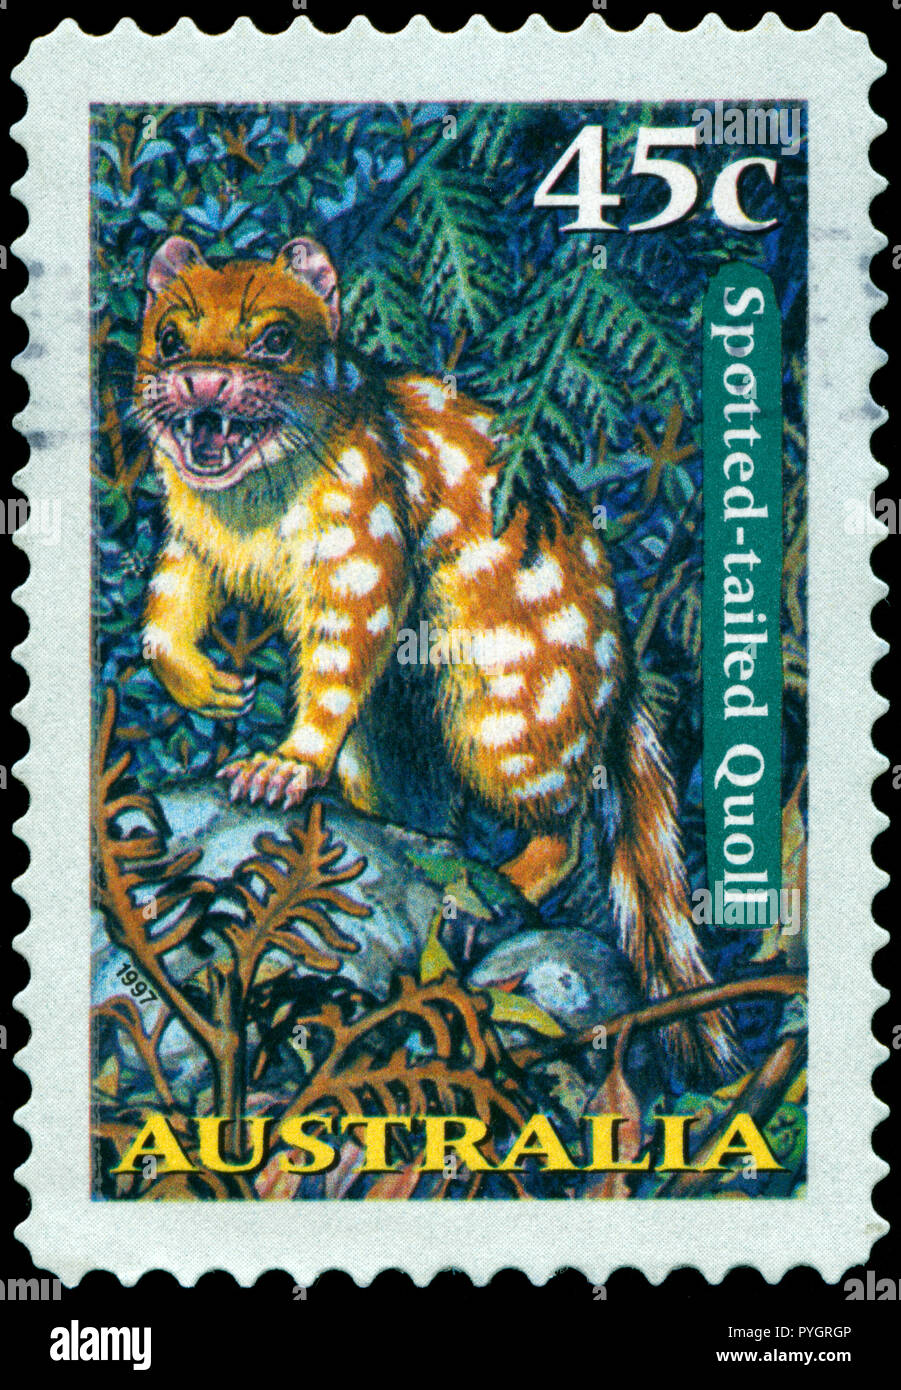 Postmarked stamp from Australia in the Nocturnal Animals series issued in 1997 - Stock Image